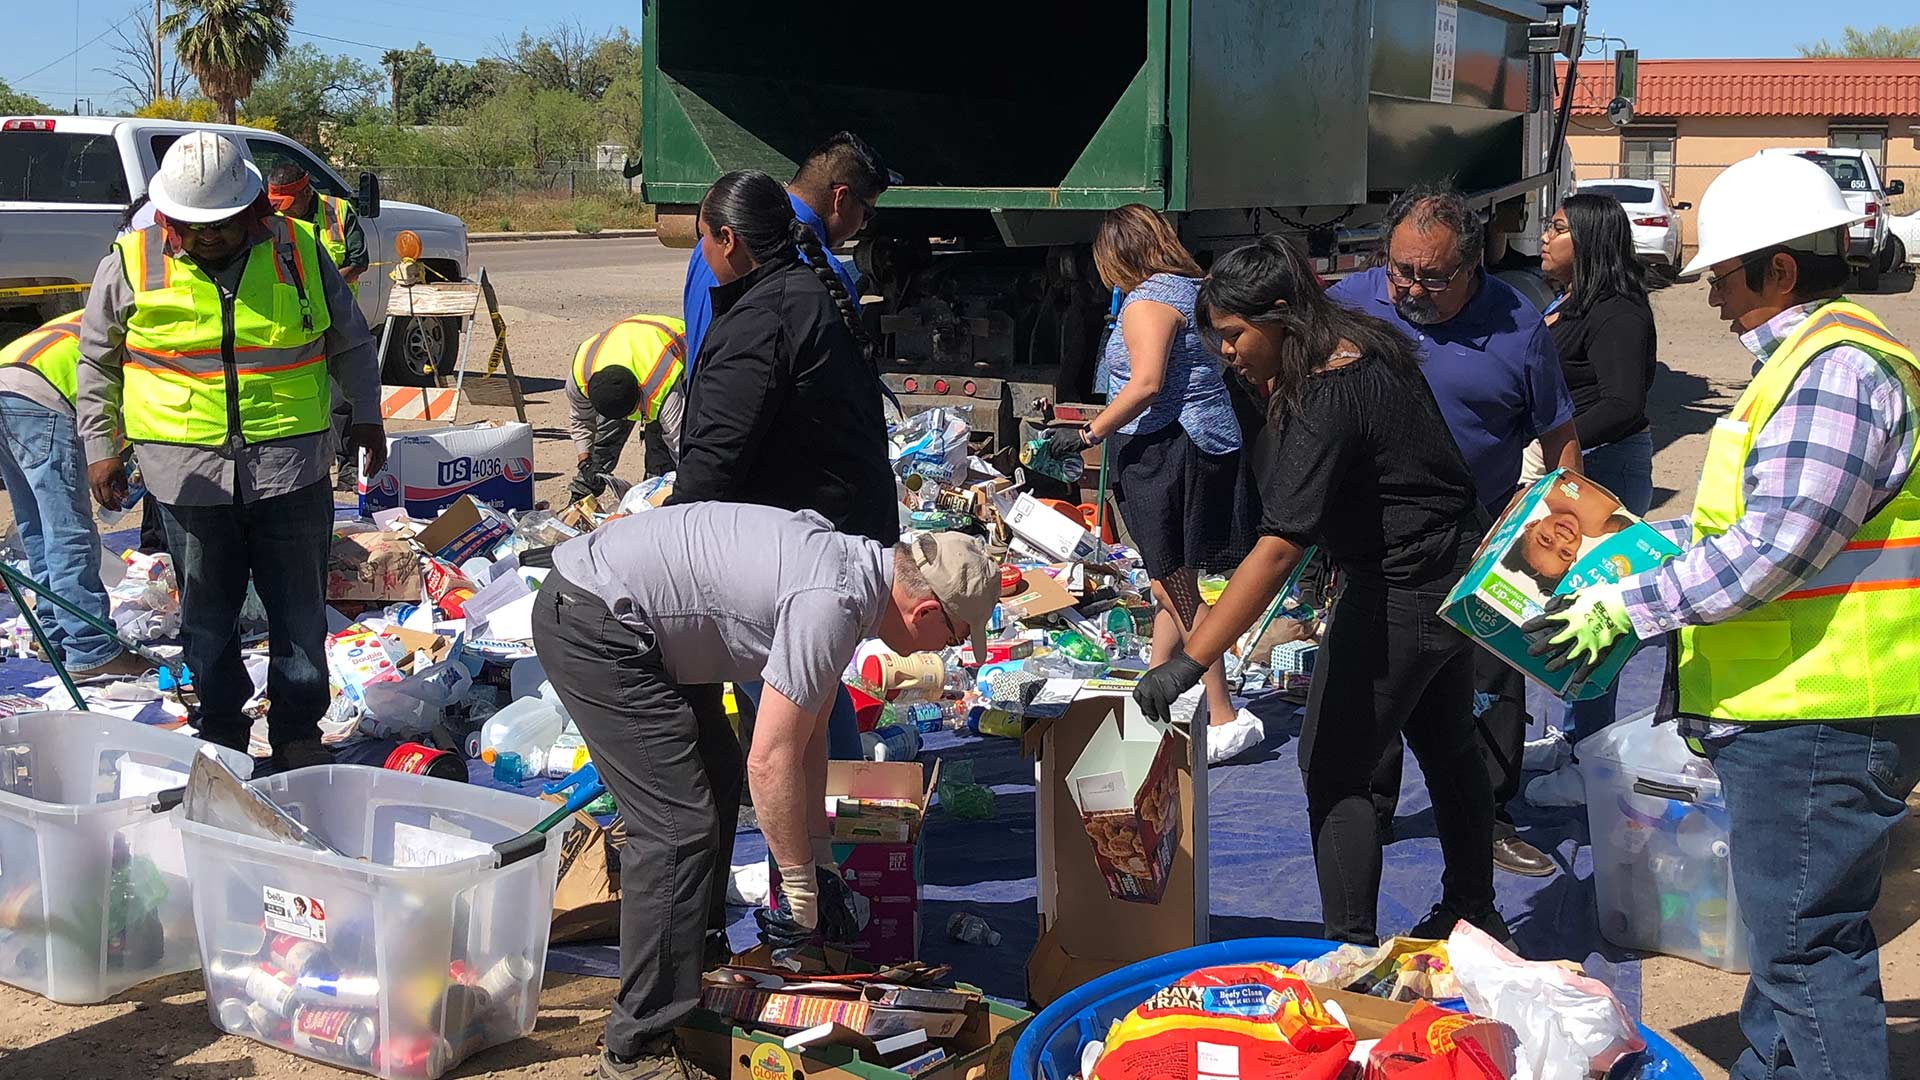 The Tohono O'odham Nation Youth Council and Representative Raúl Grijalva learned how to sort recyclables with the Tohono O'odham Nation Solid Waste Management team Monday, April 22, 2019.